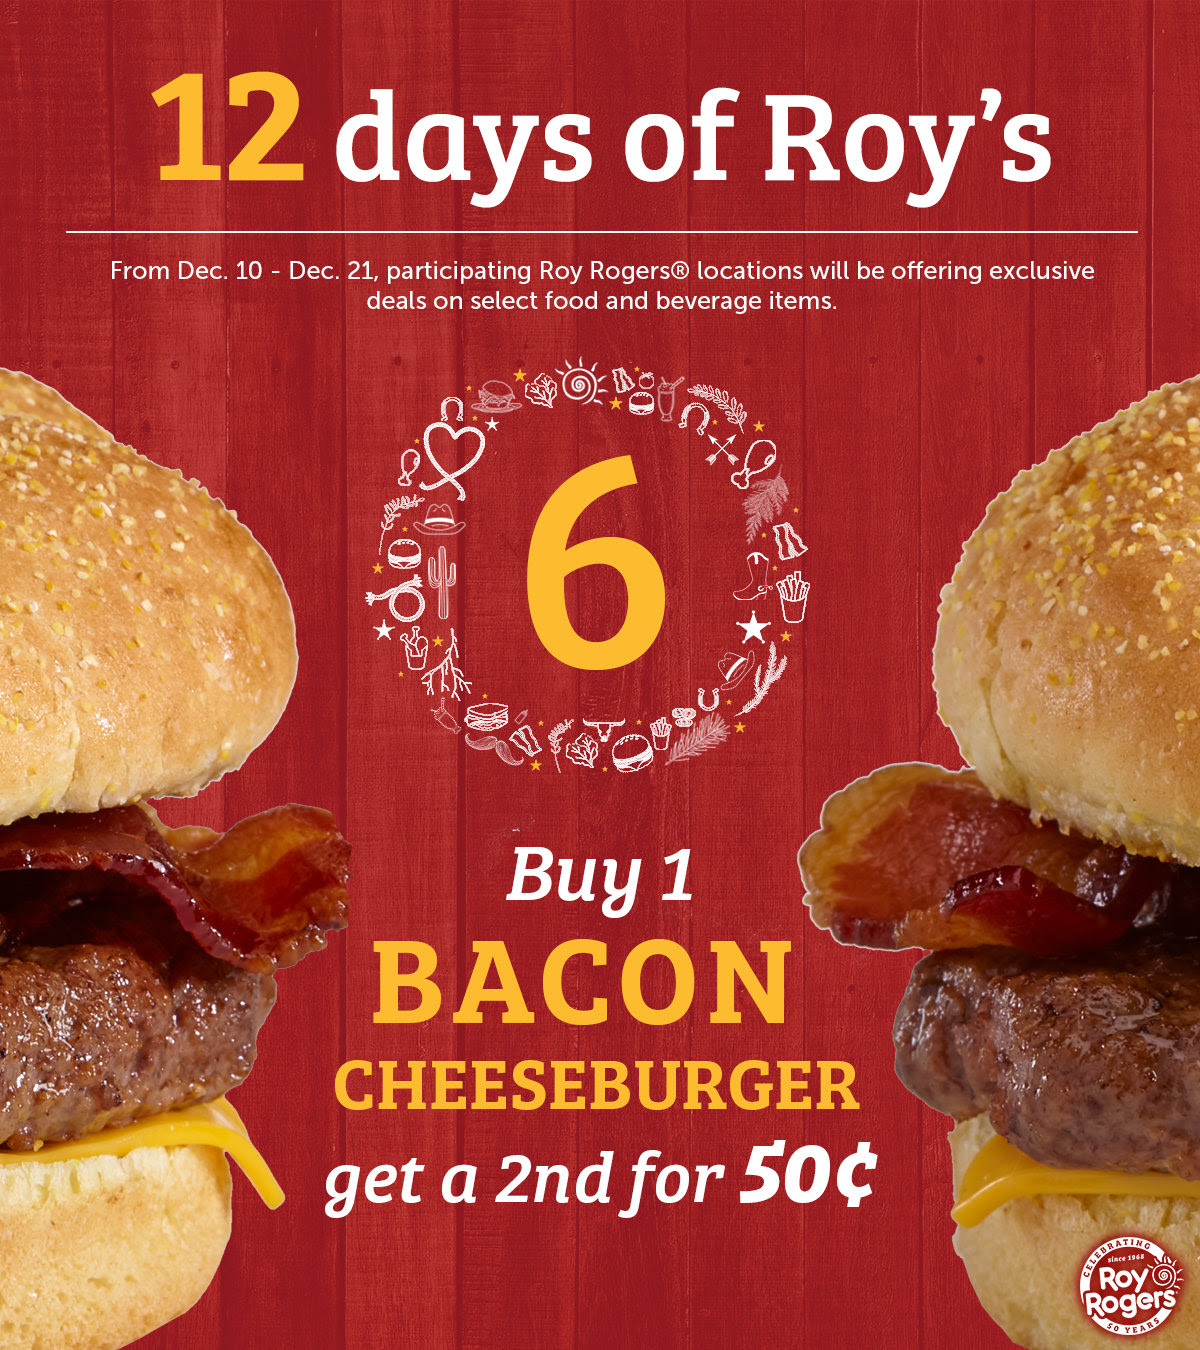 Roy Rogers Coupon May 2020 Second bacon cheeseburger .50 cents today at Roy Rogers restaurants